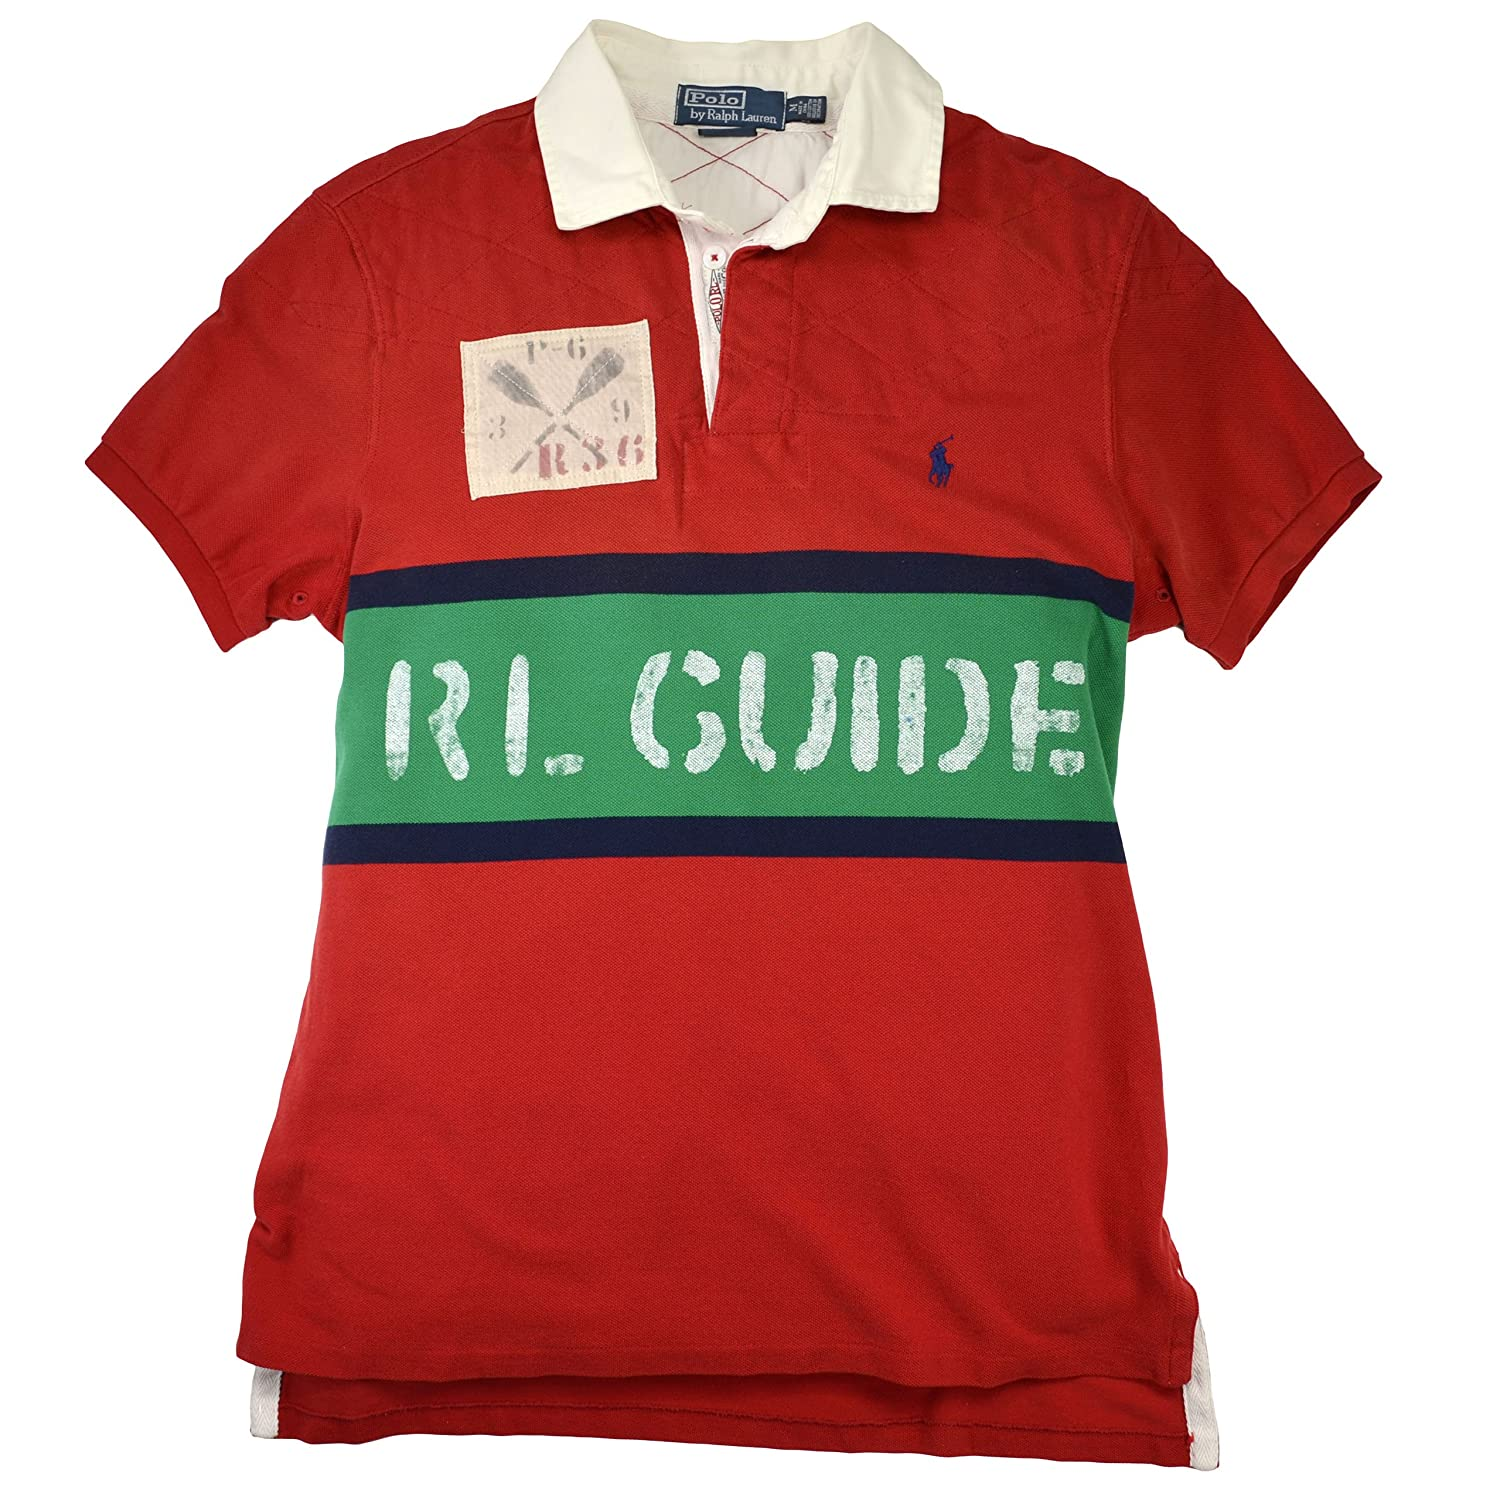 d39ffd47 Polo Ralph Lauren Men's Custom Fit Short Sleeve RL Guide Polo Shirt (Small,  Red) at Amazon Men s Clothing store: